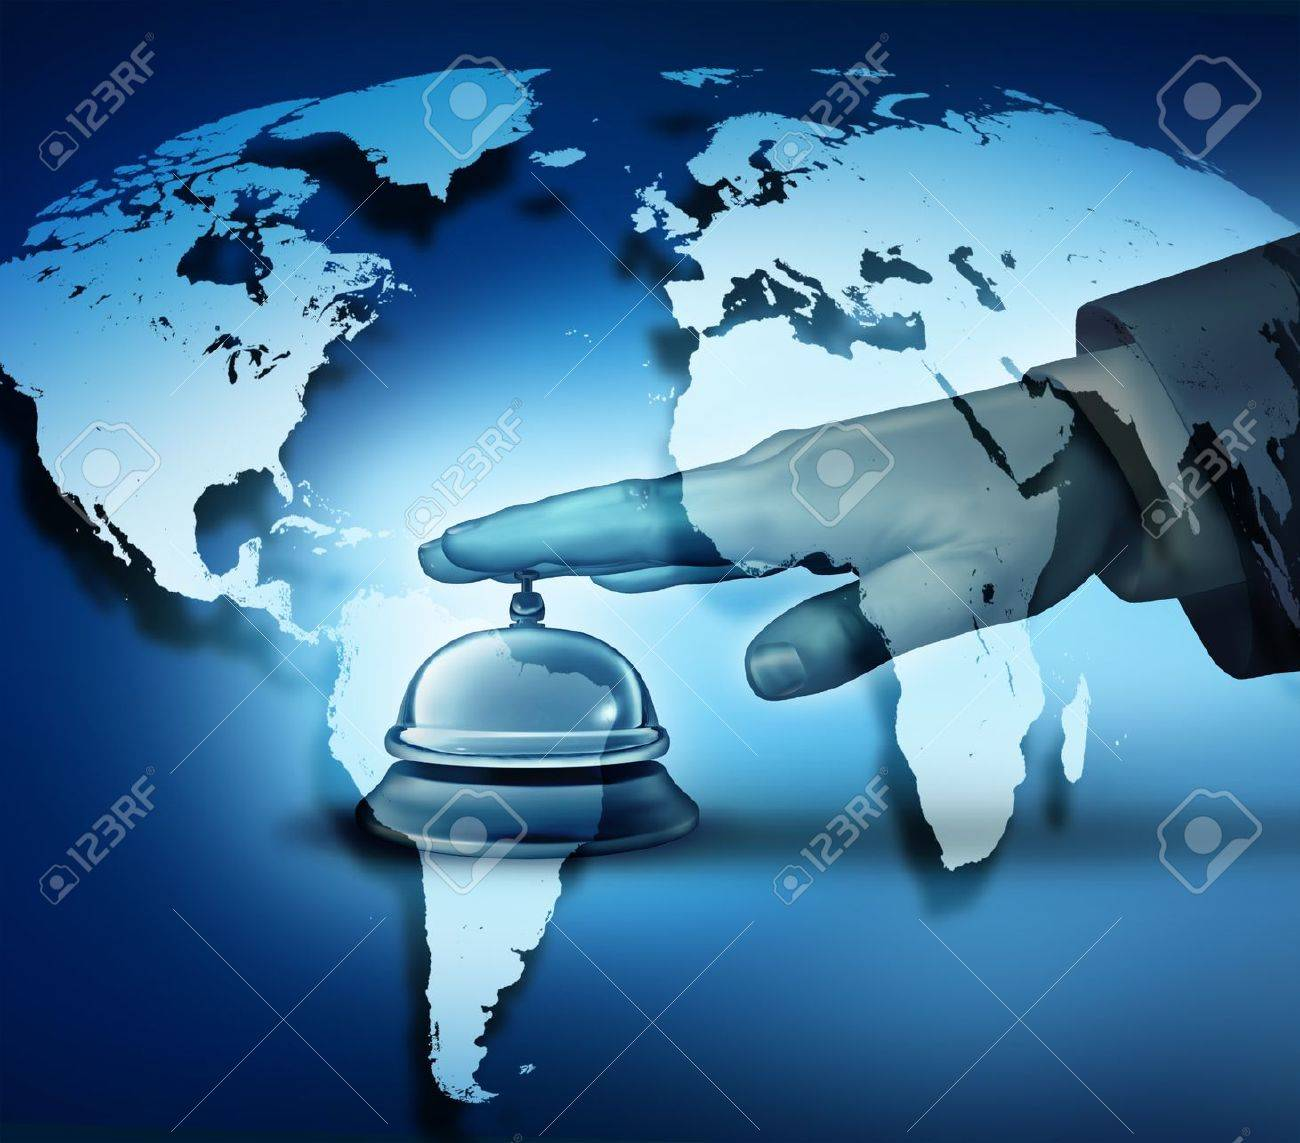 Global hotel service concept with a human hand ringing a bell on a blue world map background as a hotel symbol of first class international hospitality service Stock Photo - 18283446